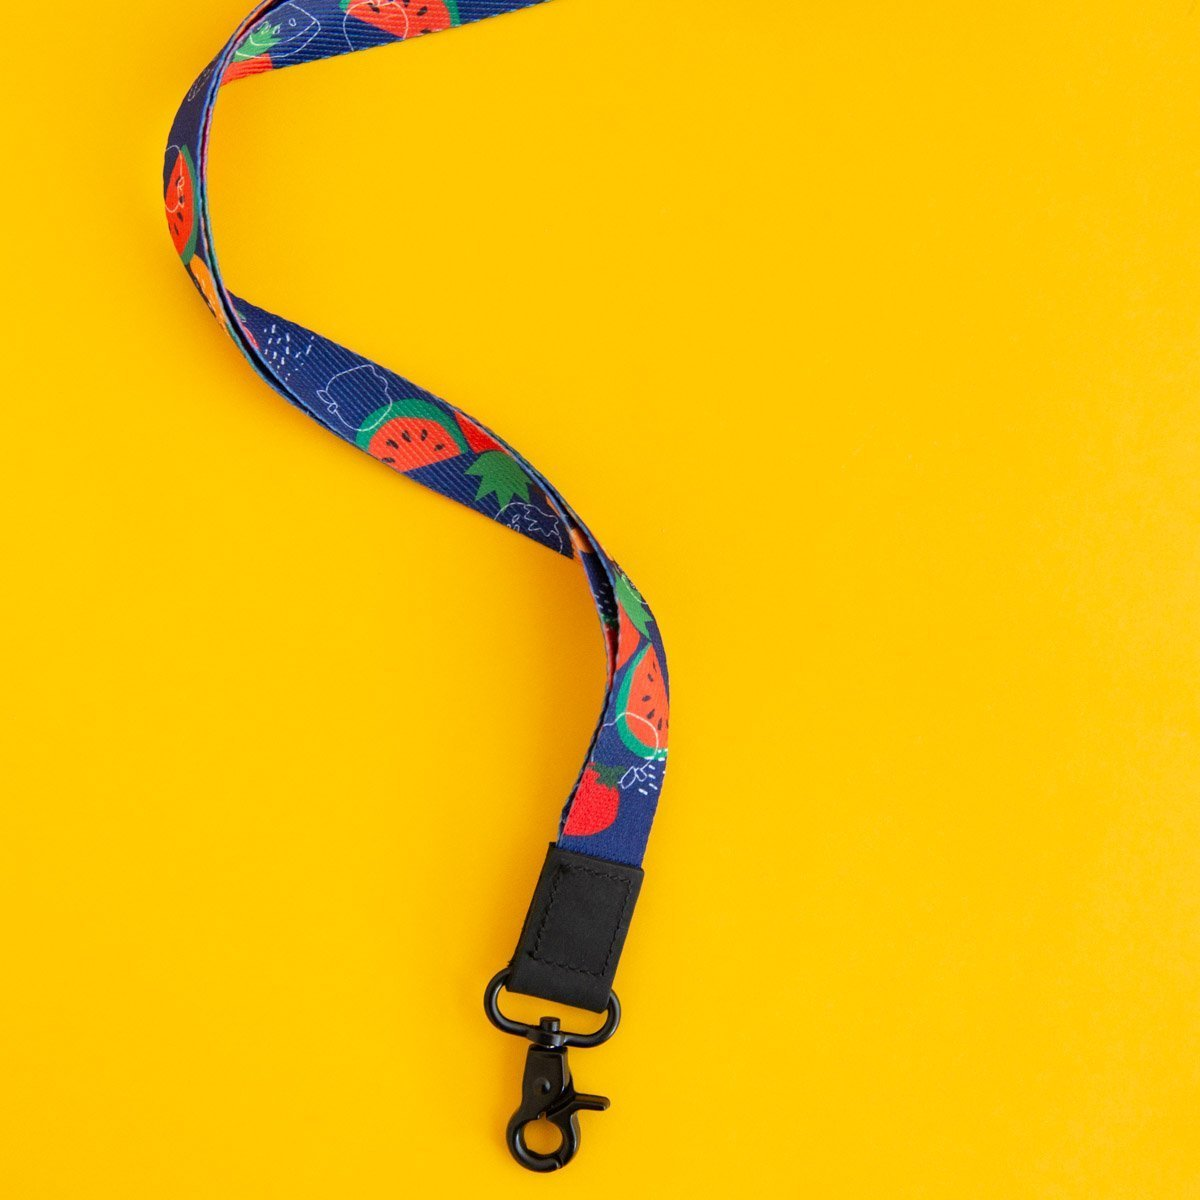 RO2099LYC-MULTI-TUTTI-FRUTTI-LANYARD-TWISTY-YELLOW-BACKGROUND.jpg